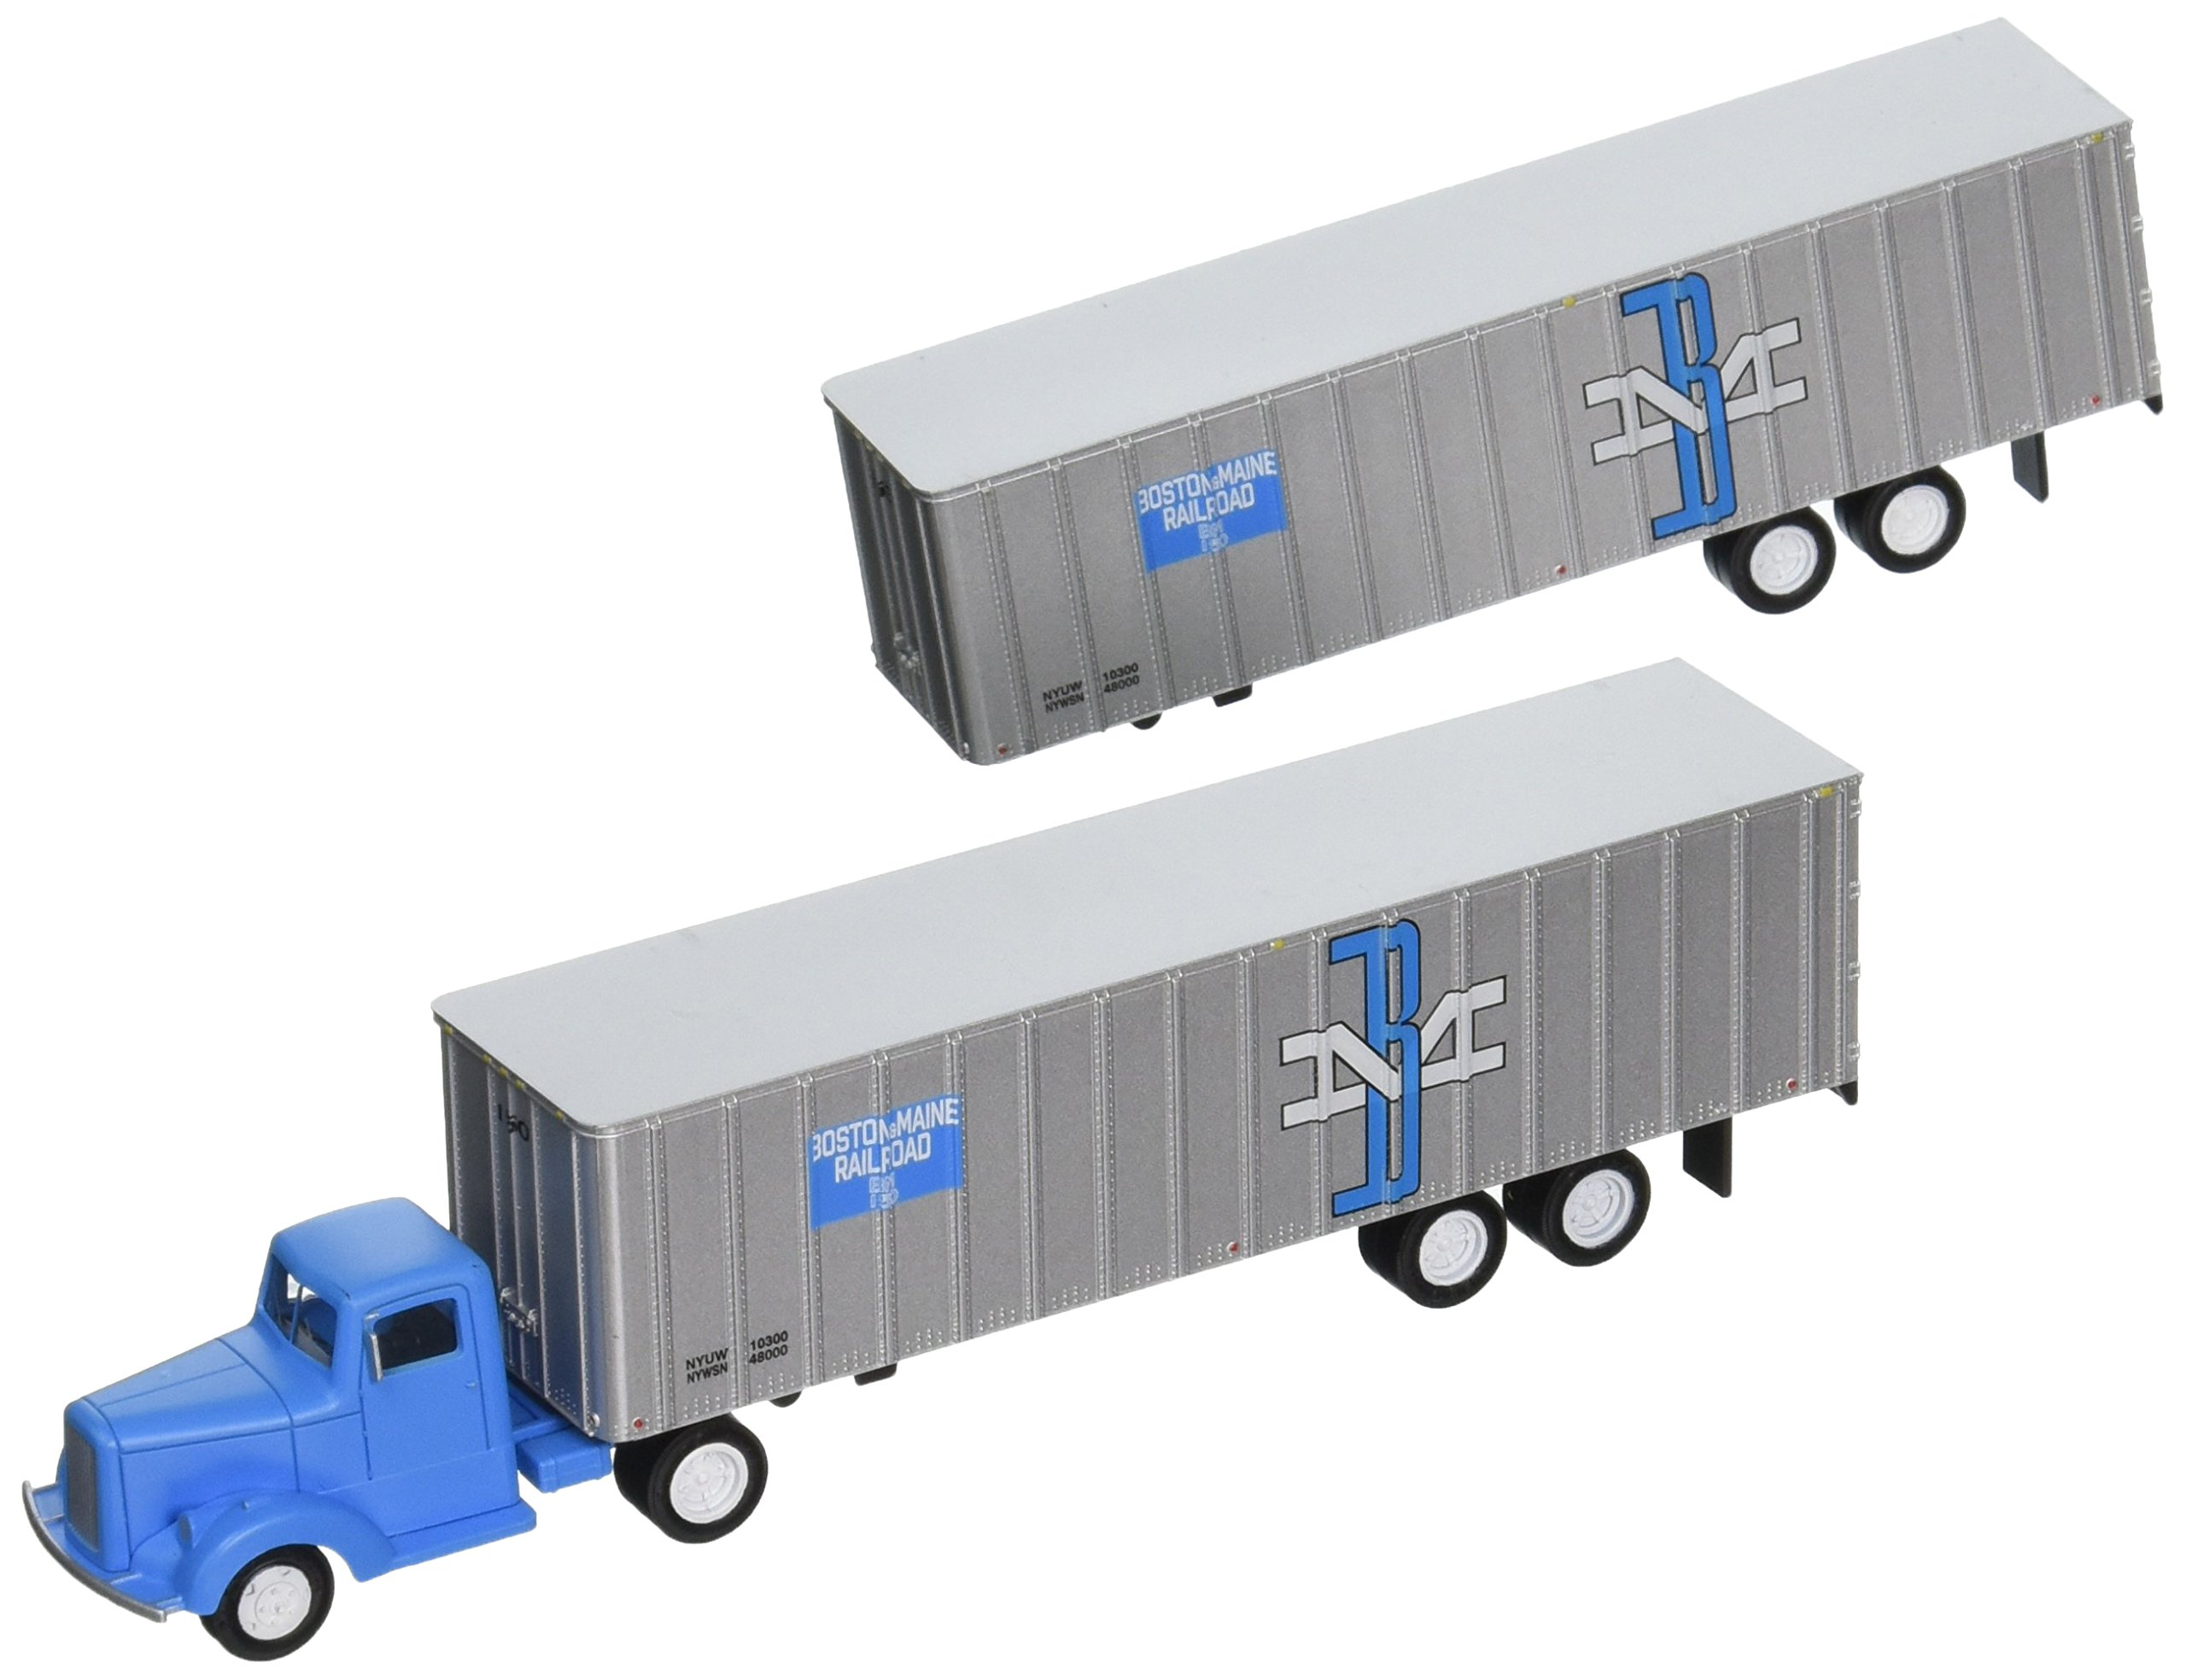 Bachmann Industries Boston & Maine 1950's/60's Truck Cab Want Two Piggy Back Trailers (HO Scale Train) by Bachmann Trains